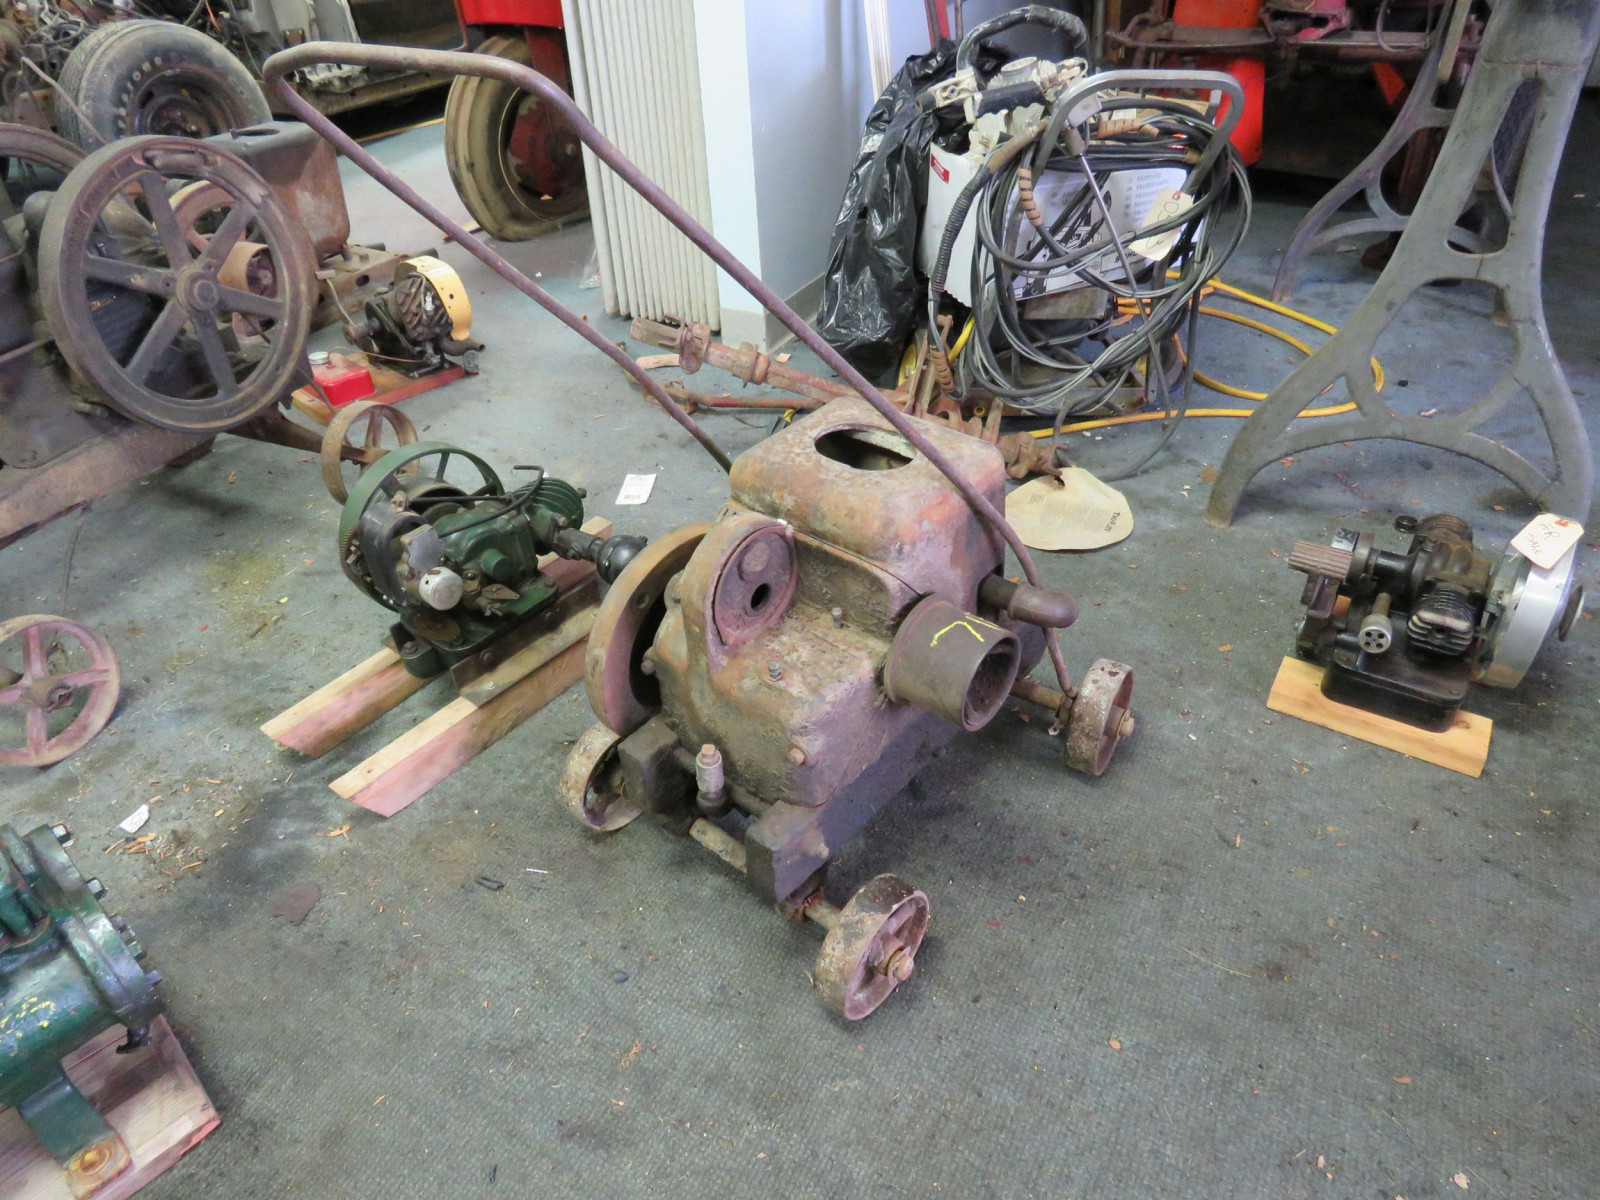 Fairbanks Morse Type Z 1 1/2 Hp Stationary gas engine - Image 1